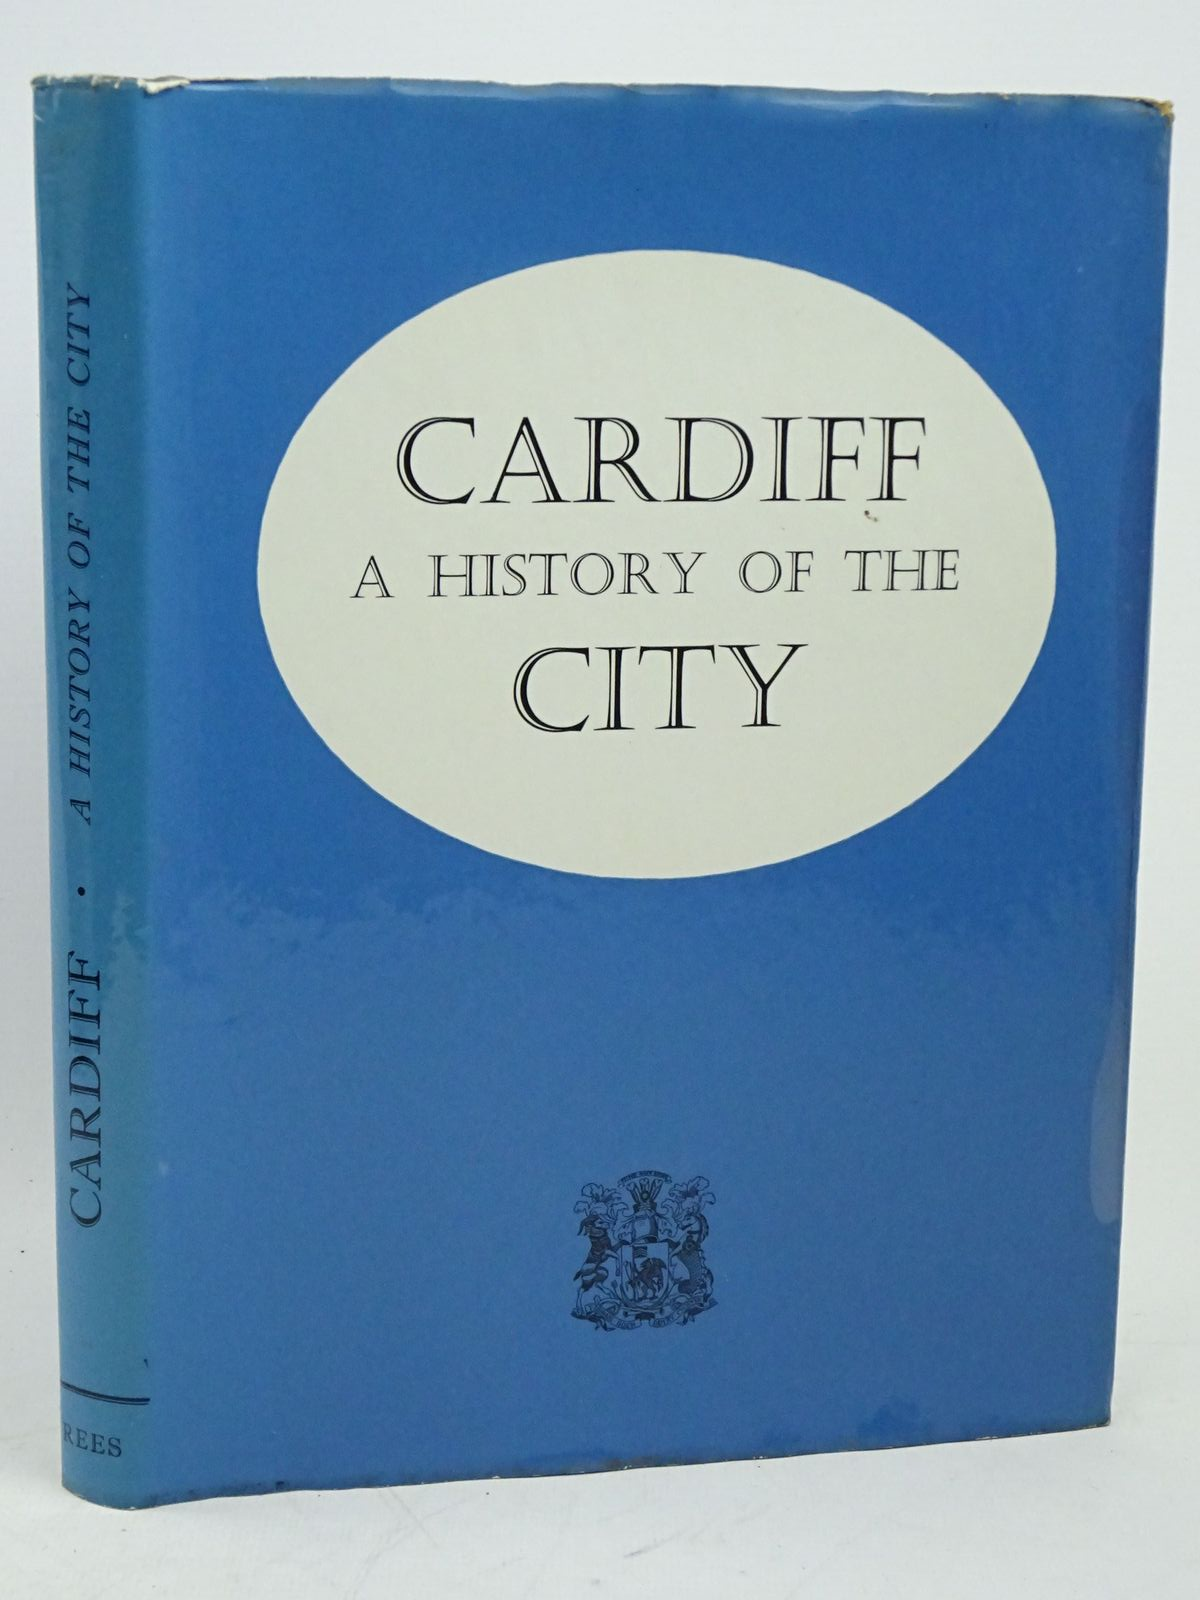 Photo of CARDIFF A HISTORY OF THE CITY written by Rees, William published by The Corporation of Cardiff (STOCK CODE: 1317981)  for sale by Stella & Rose's Books